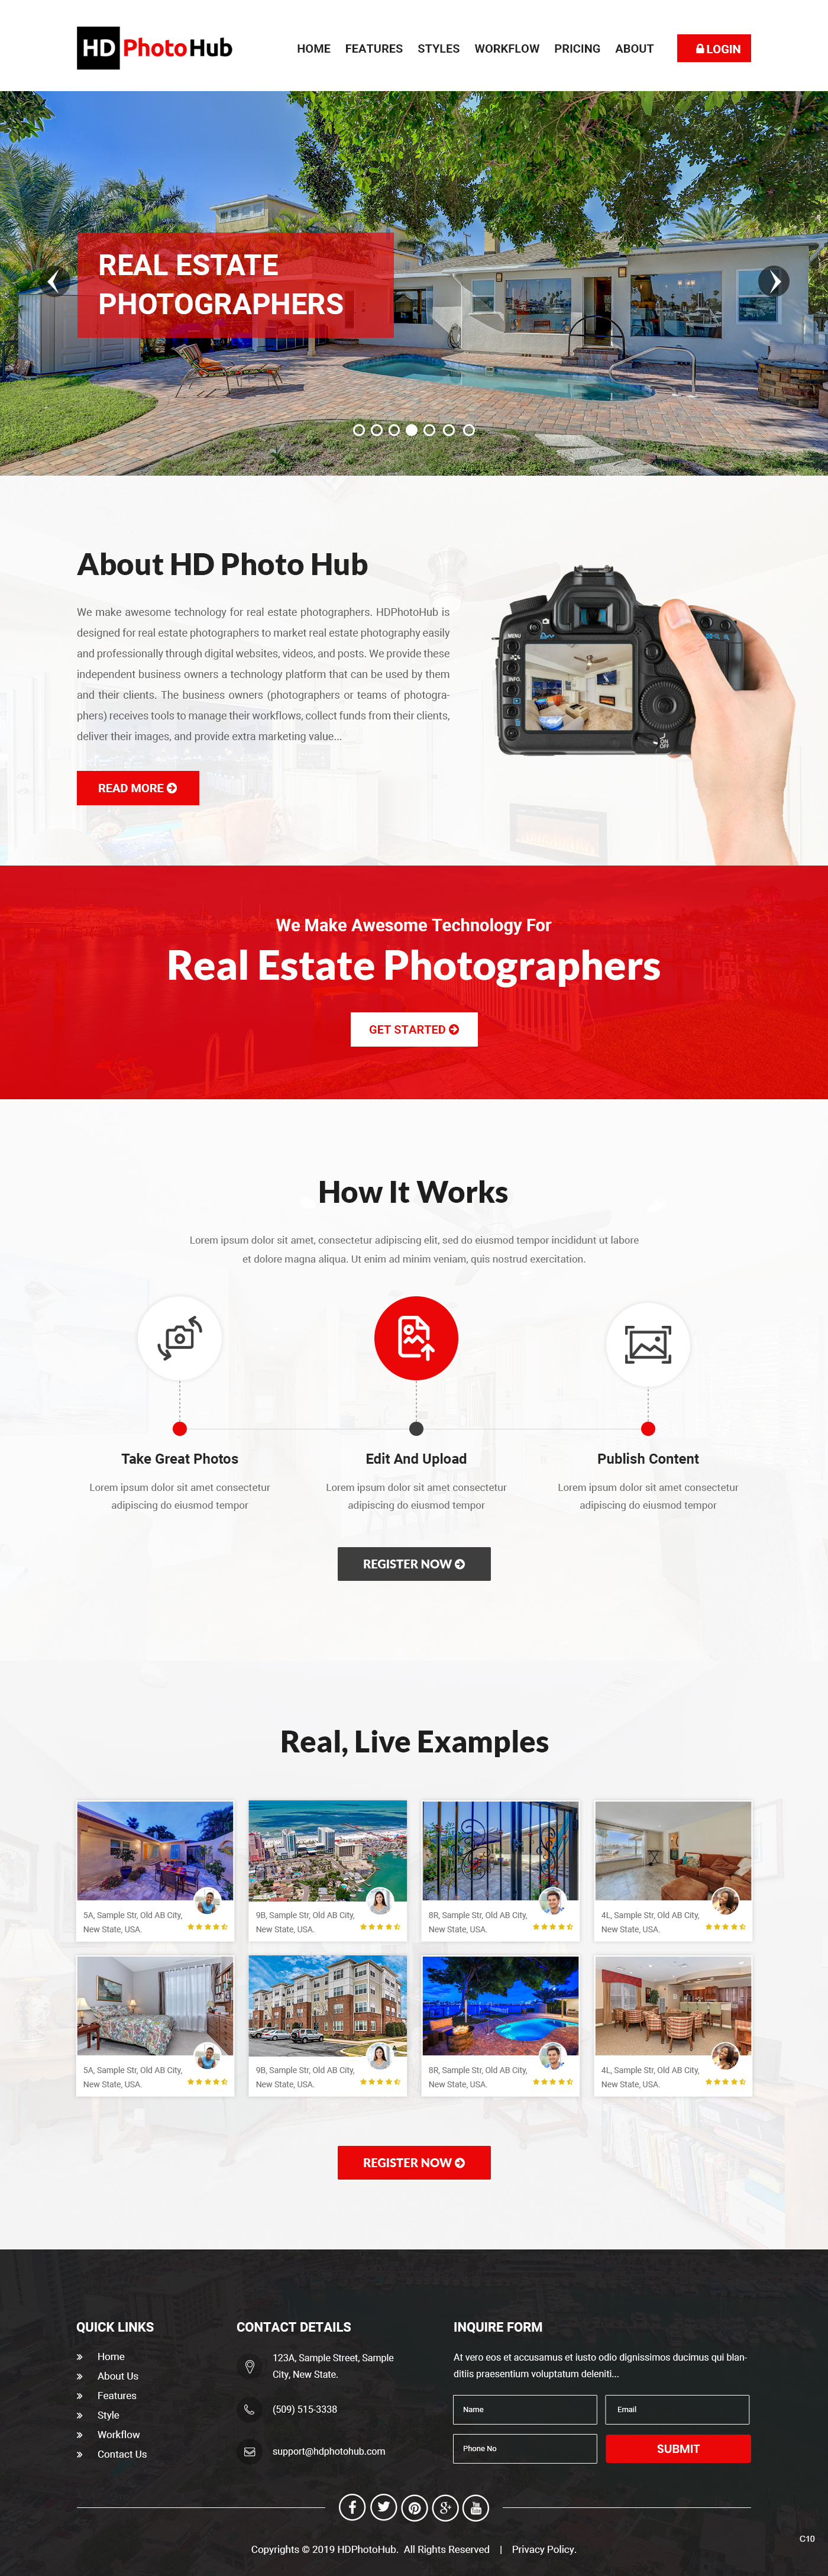 Participating Entry #4 for Website Design contest - Single Real Estate Property Listing Website Template - original